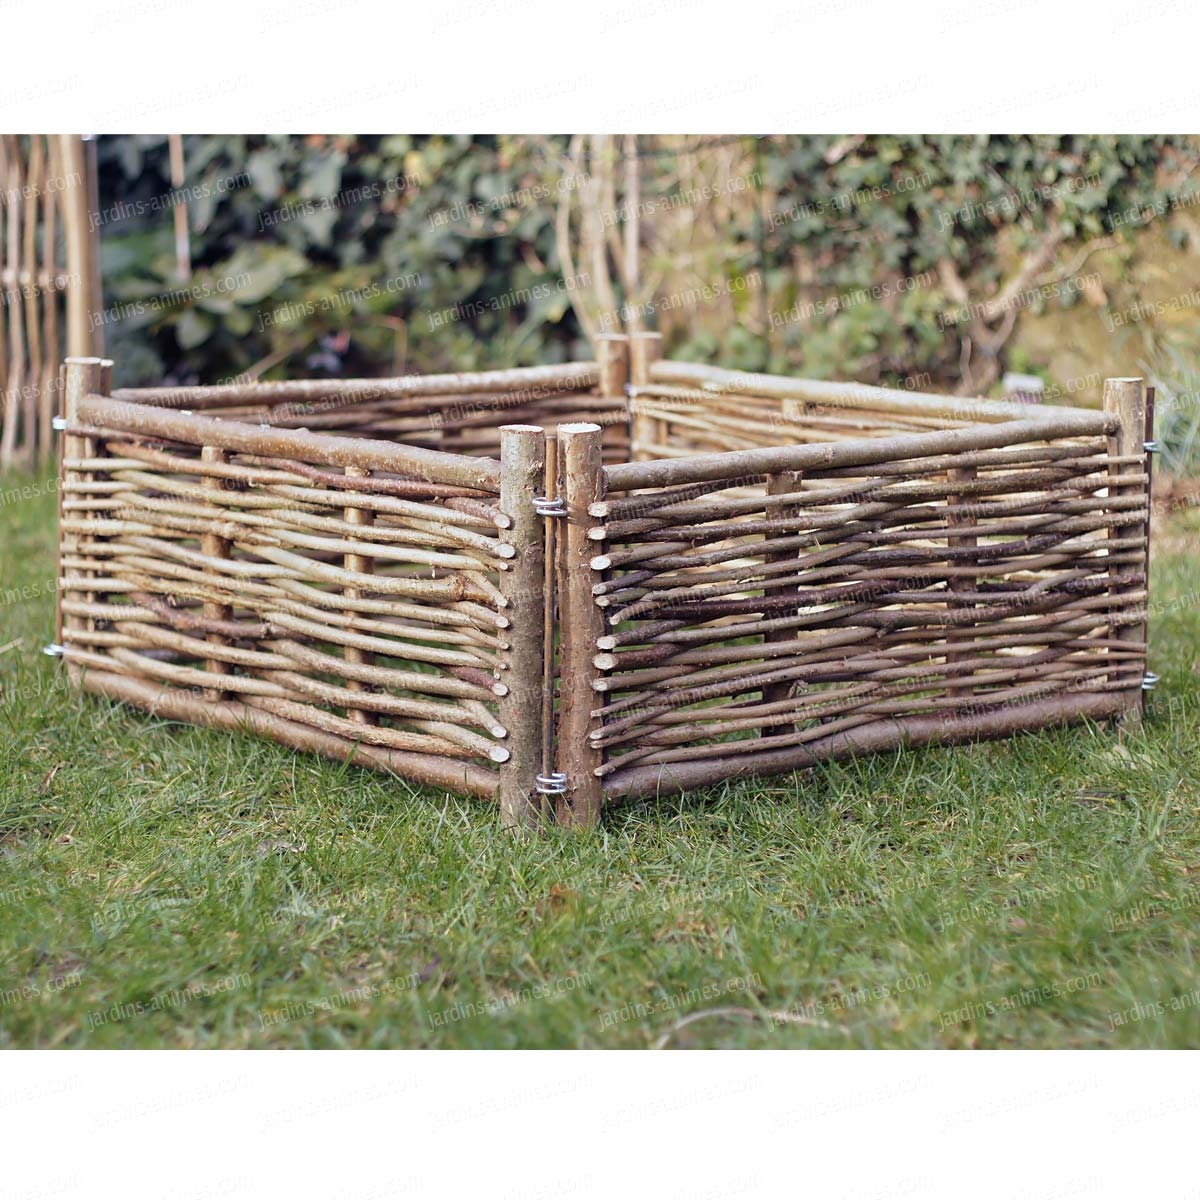 carr potager noisetier haut 35cm carr potager. Black Bedroom Furniture Sets. Home Design Ideas